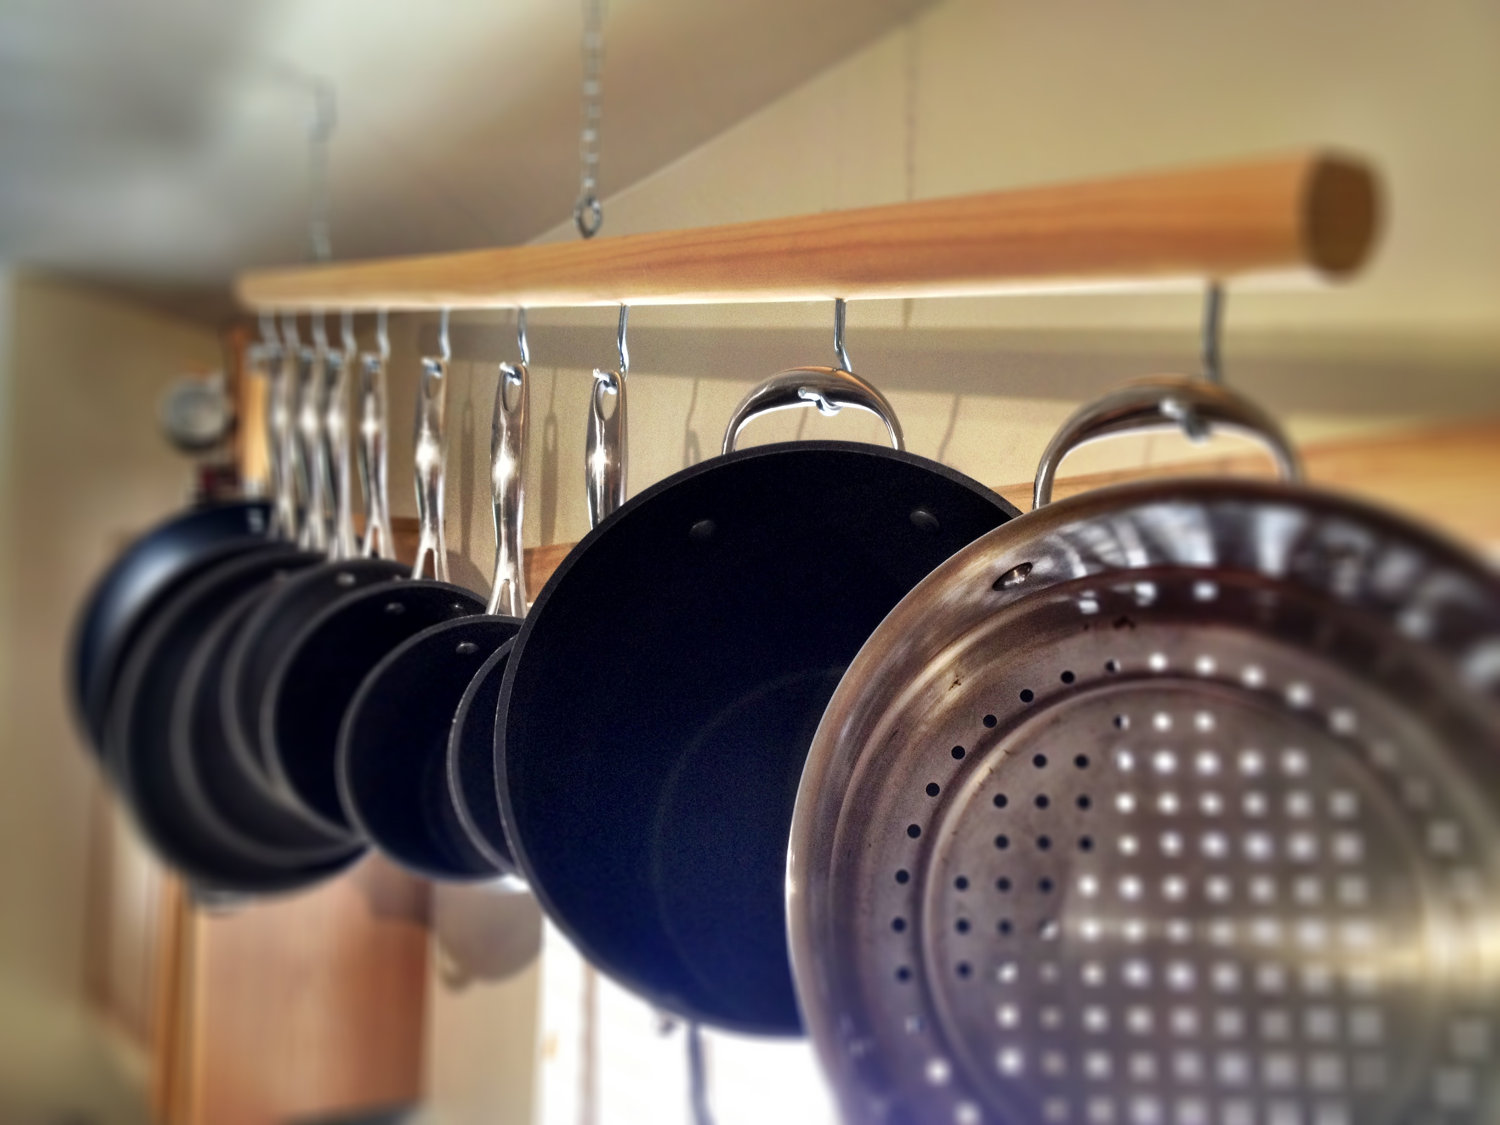 Ceiling Bar Racks For Hanging Your Pots And Pans